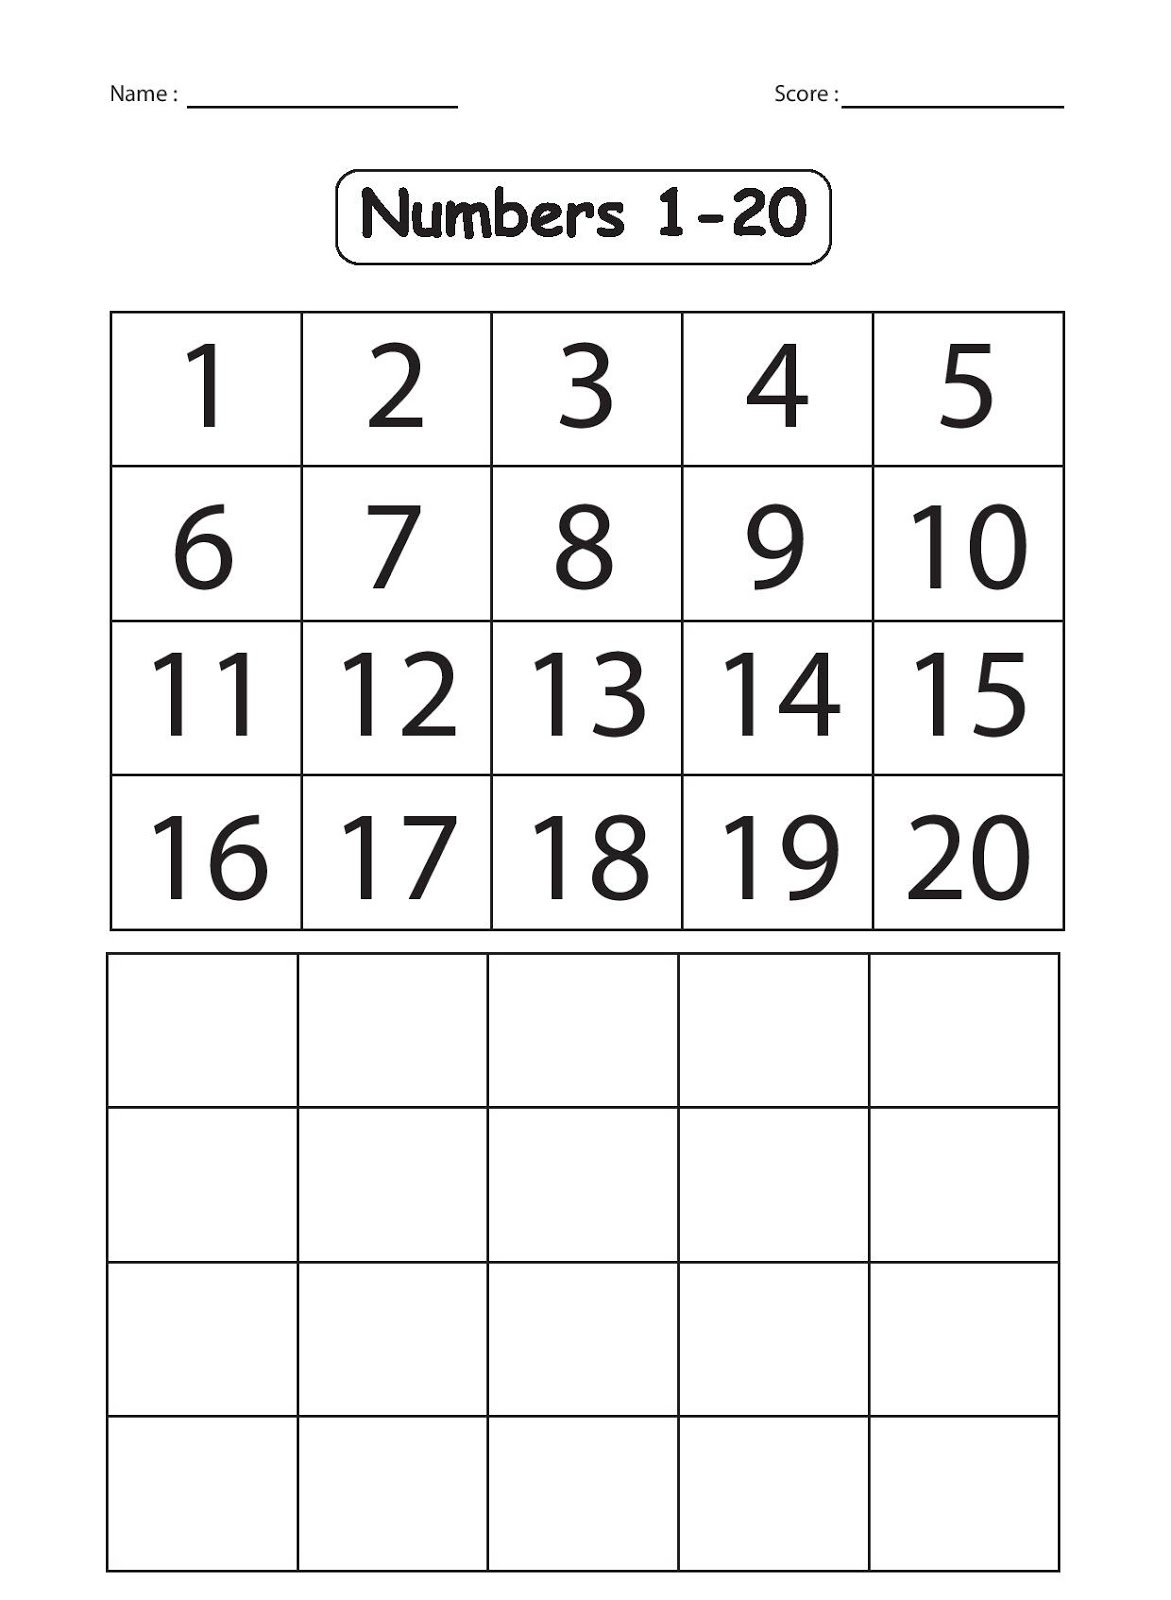 Number Writing Assessment 1 20